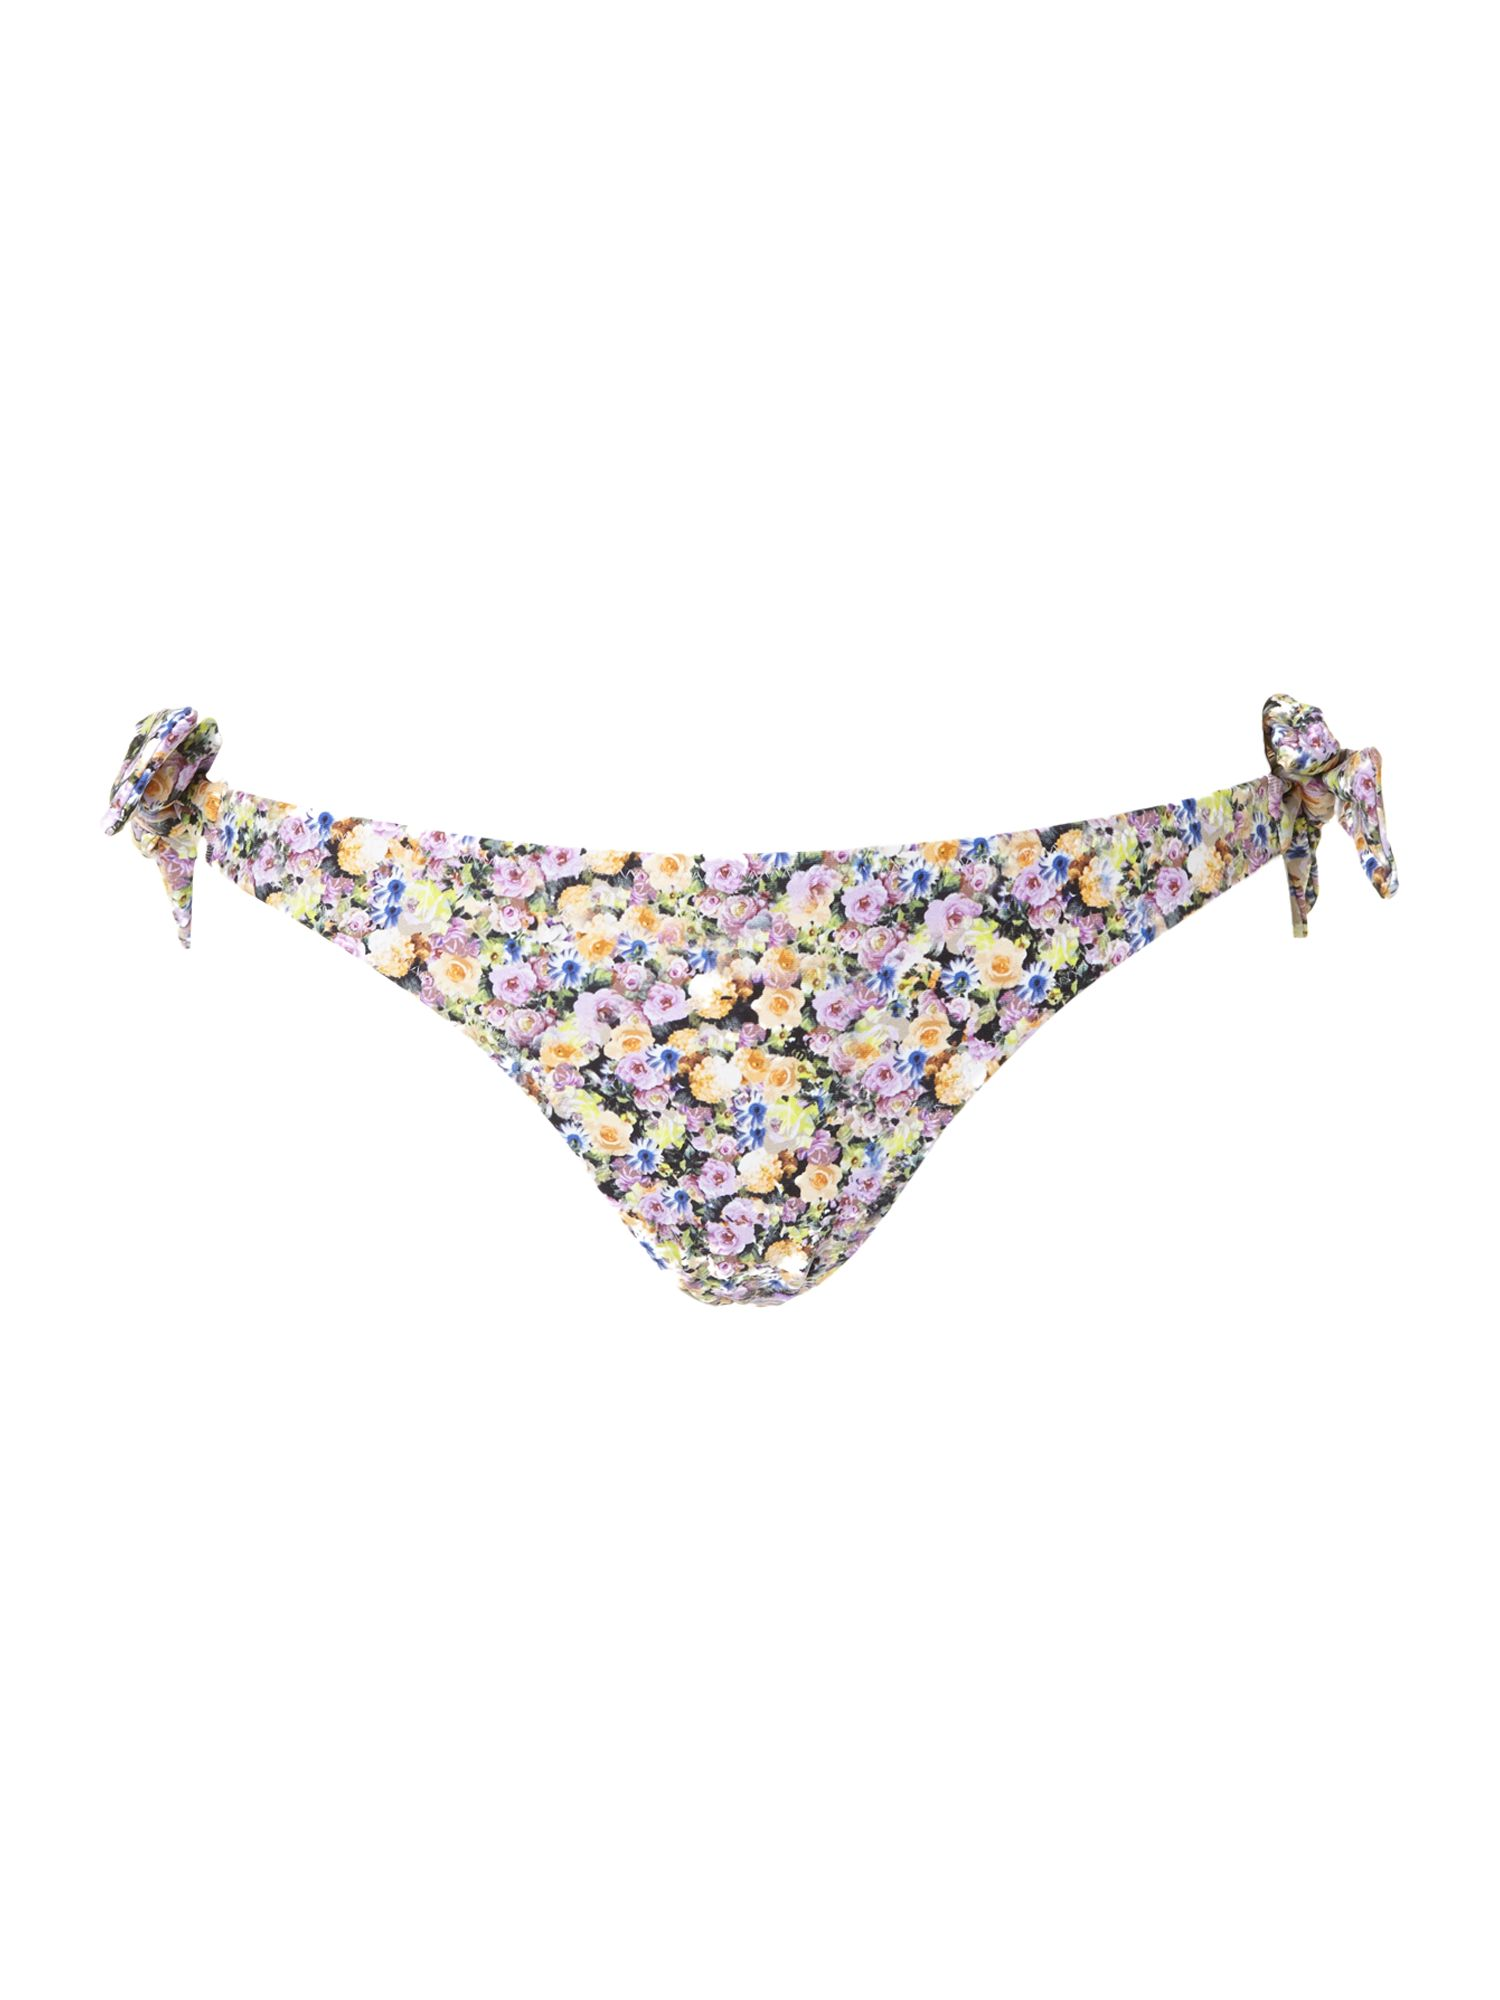 Garden party tie side brief